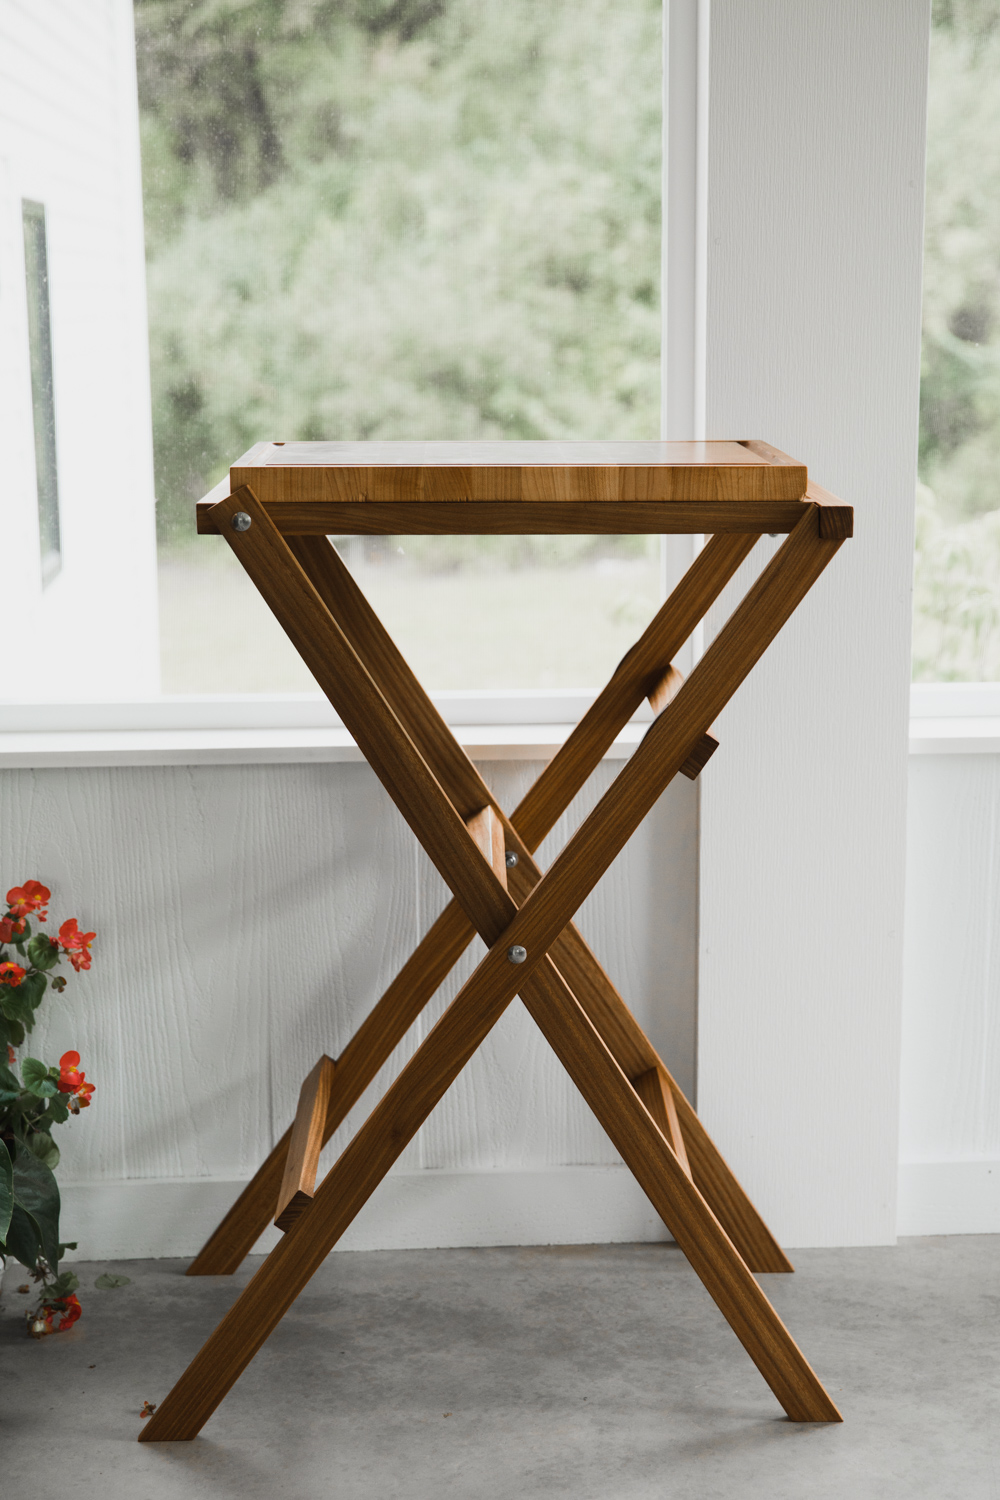 BIG-TOOTH-CO_end_grain_cutting_board_with_stand (4 of 27).jpg